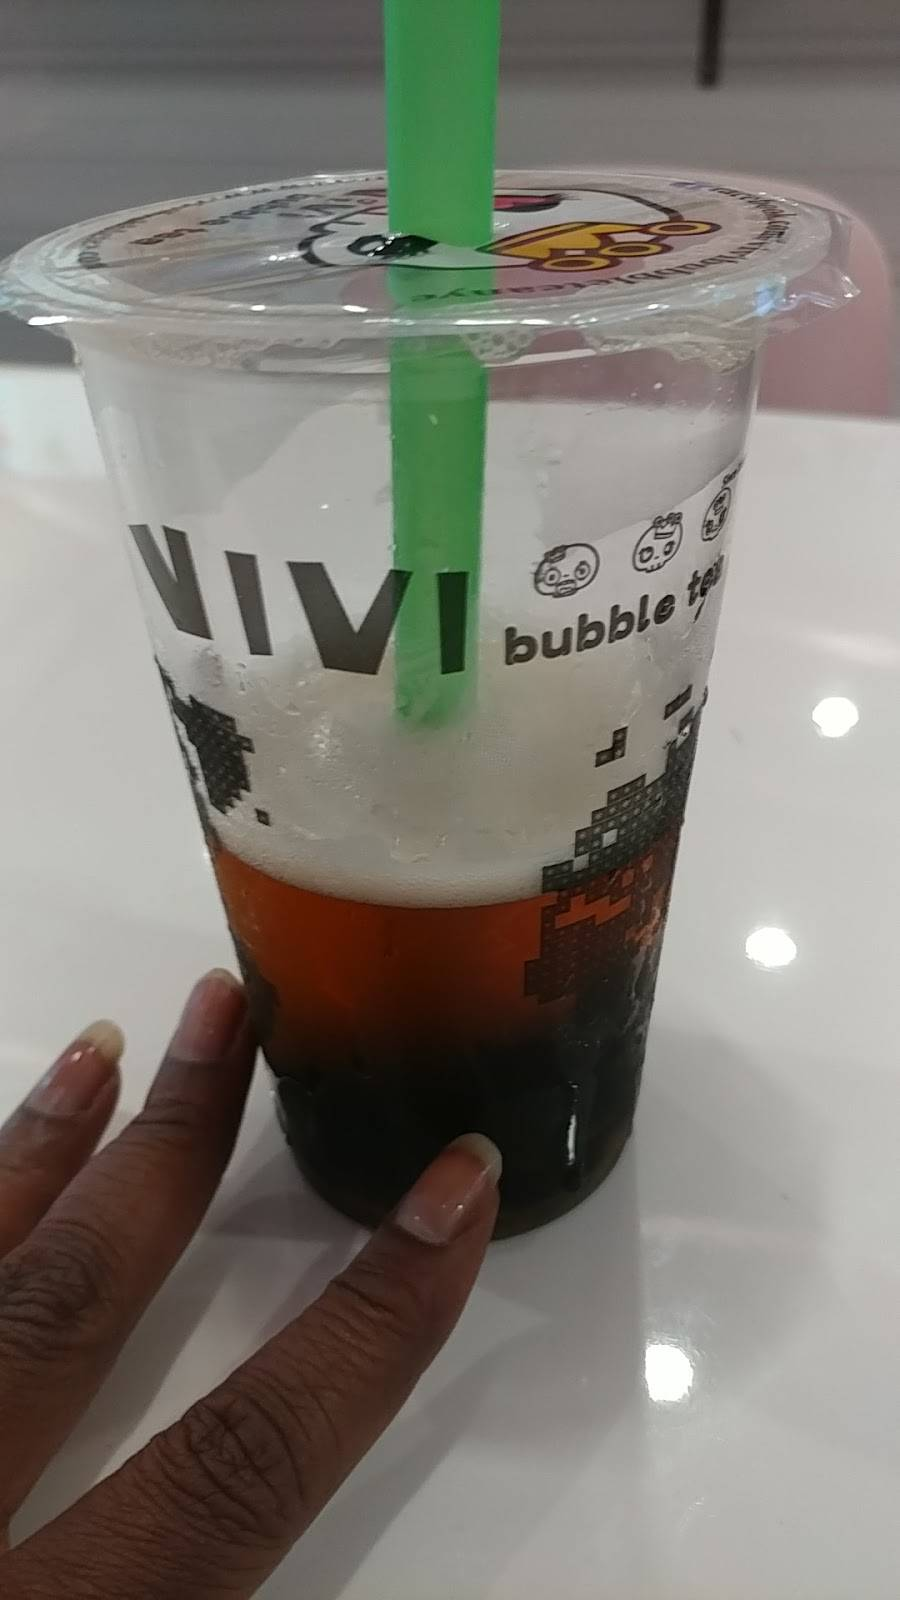 Vivi bubble tea | cafe | 1324 2nd Ave, New York, NY 10021, USA | 6468580710 OR +1 646-858-0710